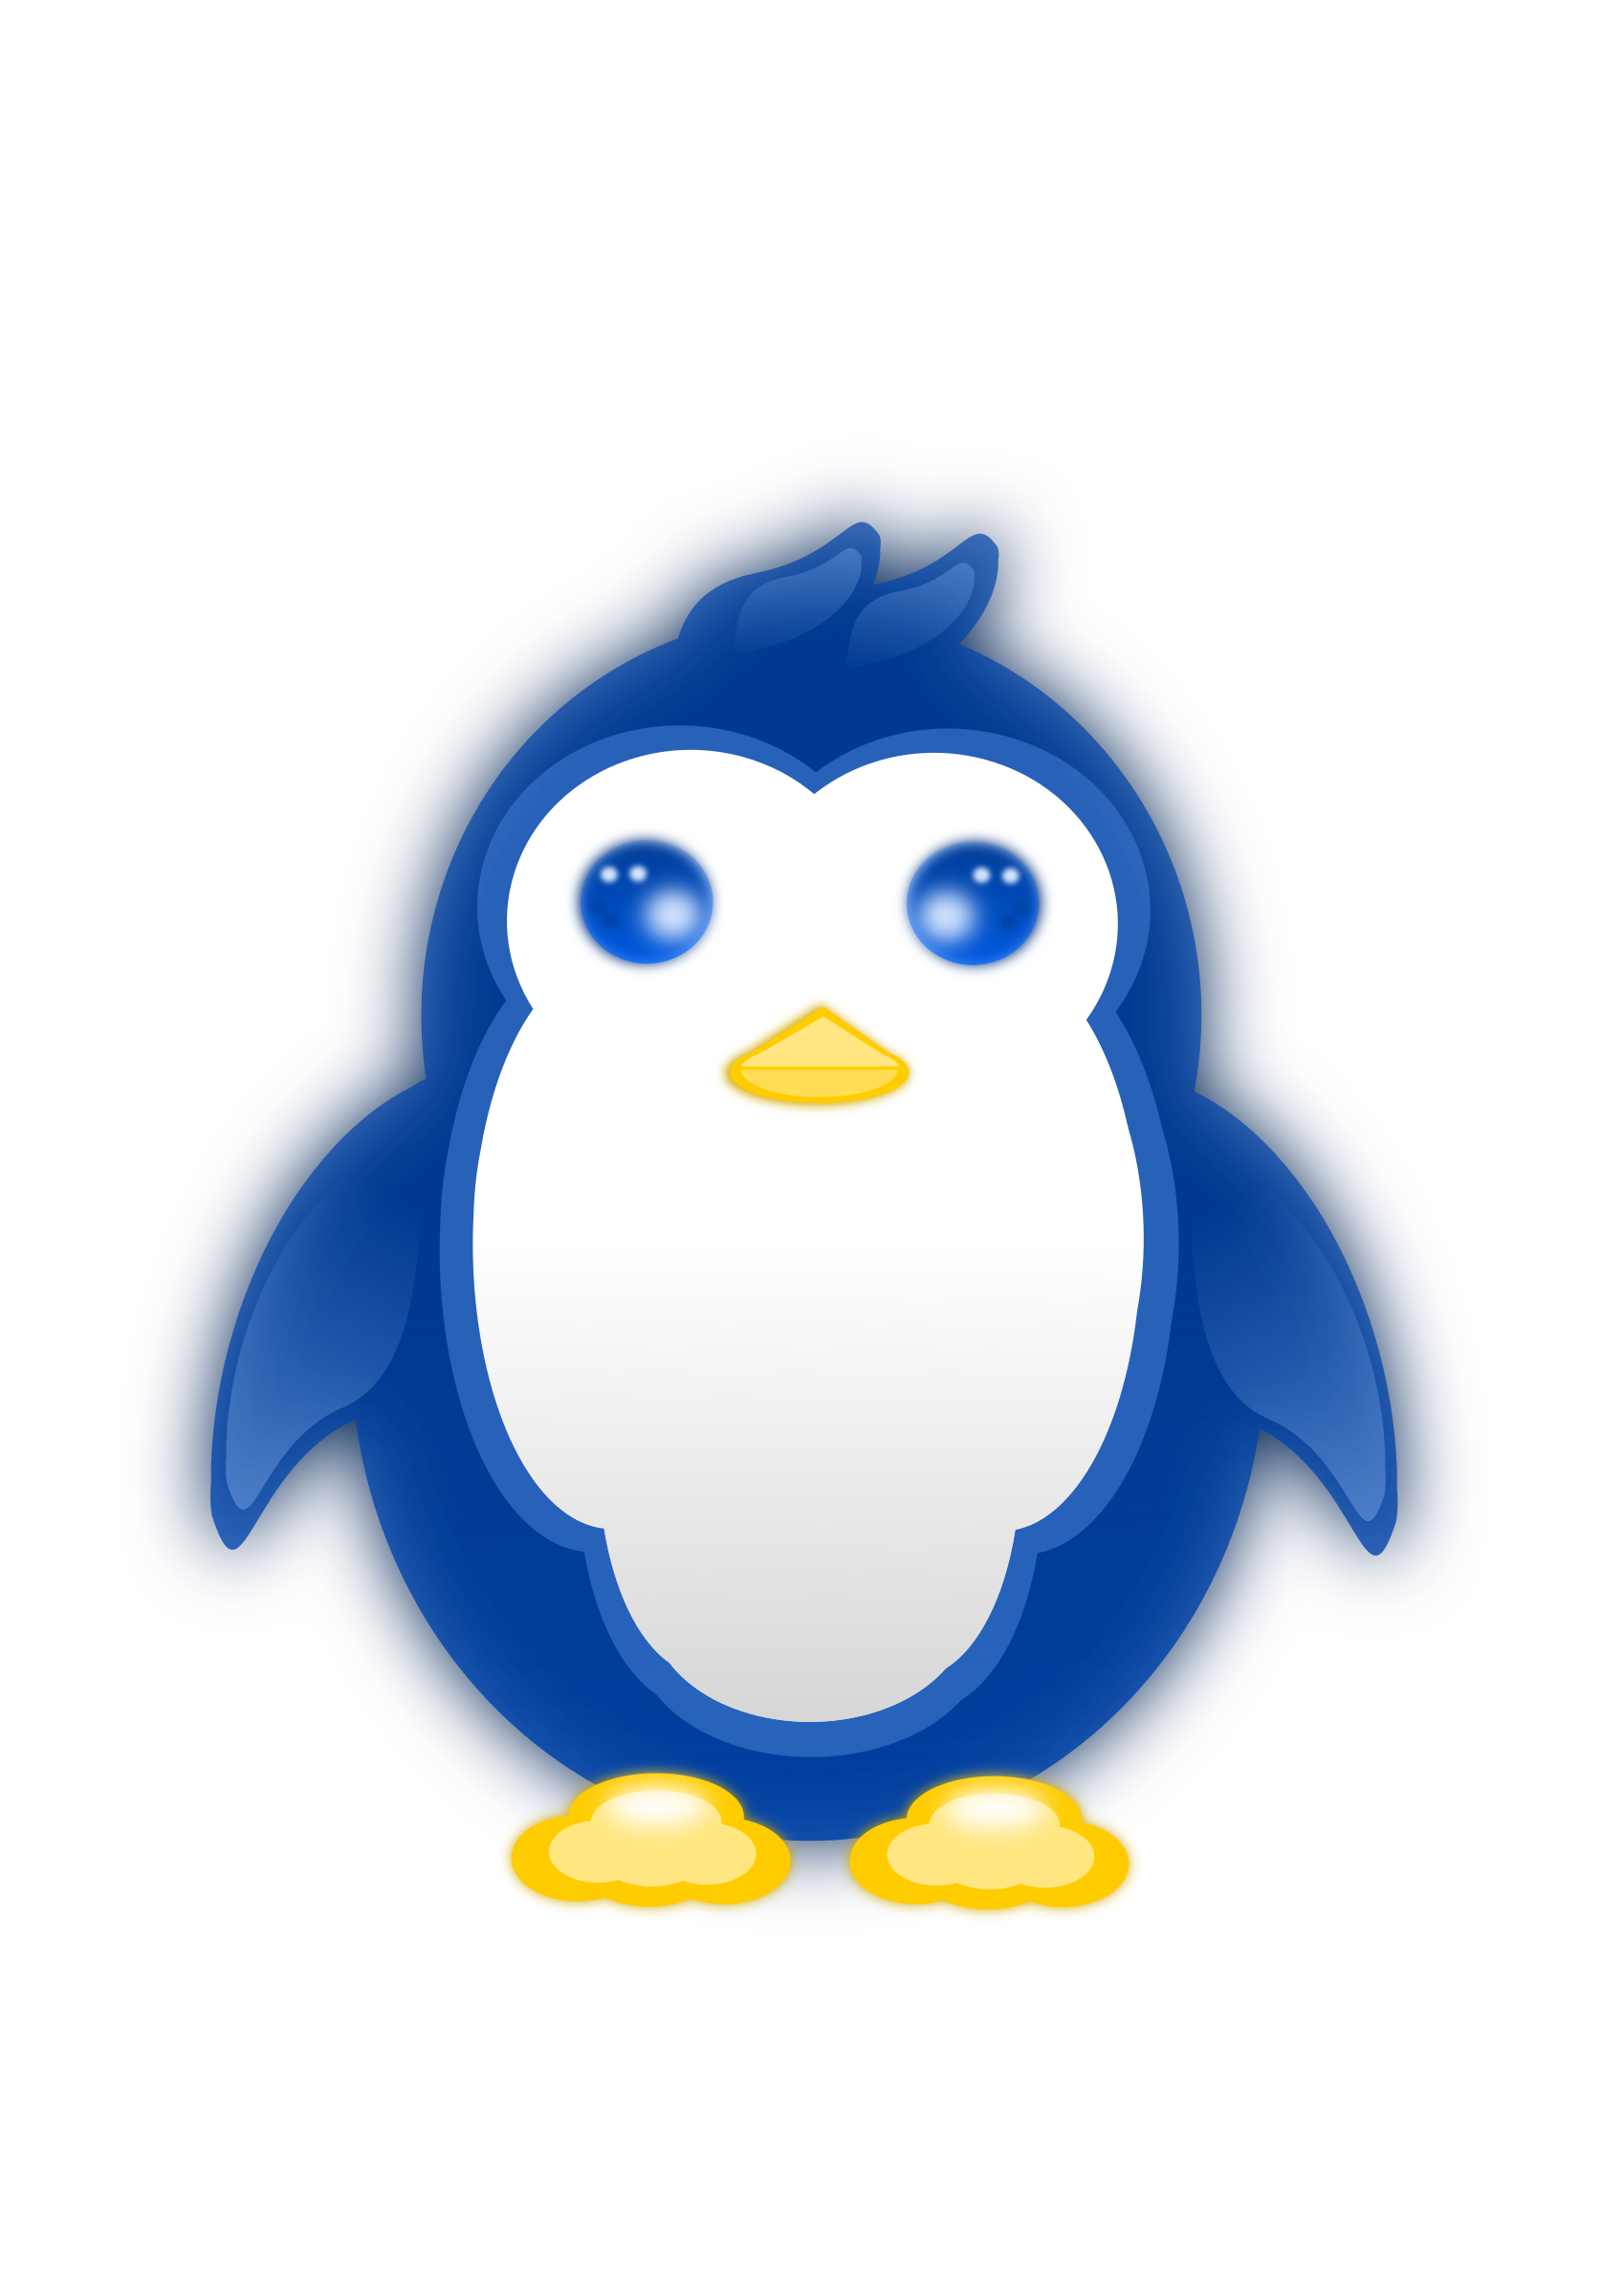 Small penguin by gblas.ivan